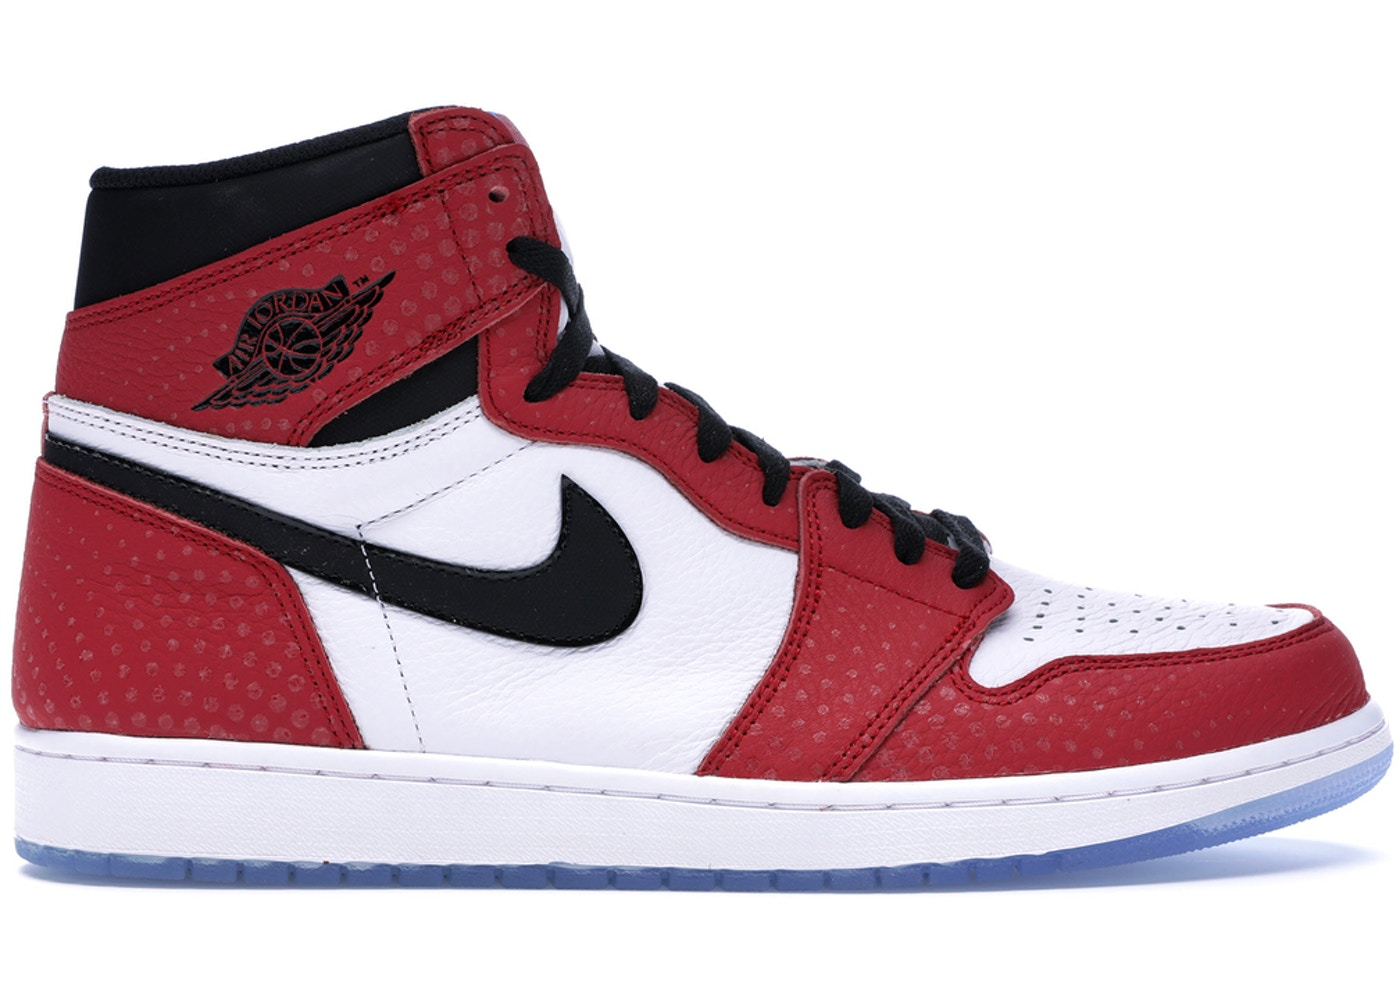 e33b5ca5ea67 Jordan 1 Retro High Spider-Man Origin Story - 555088-602